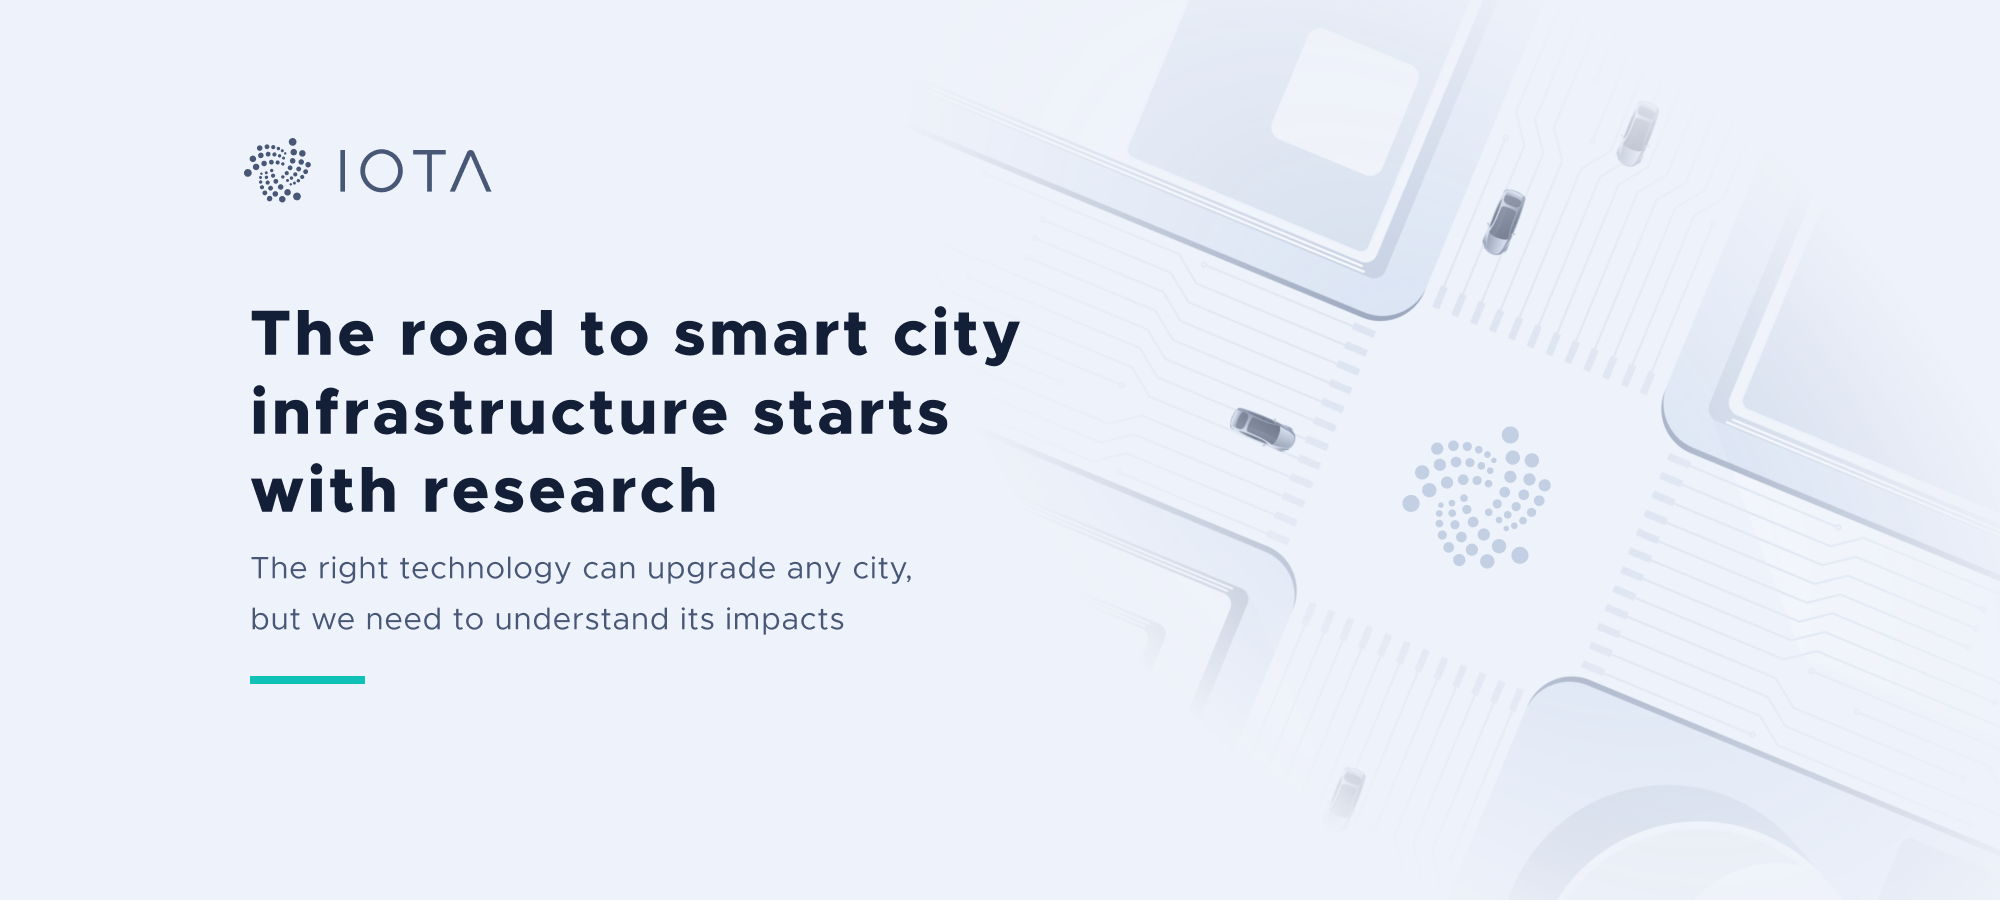 The road to smart city infrastructure starts with research